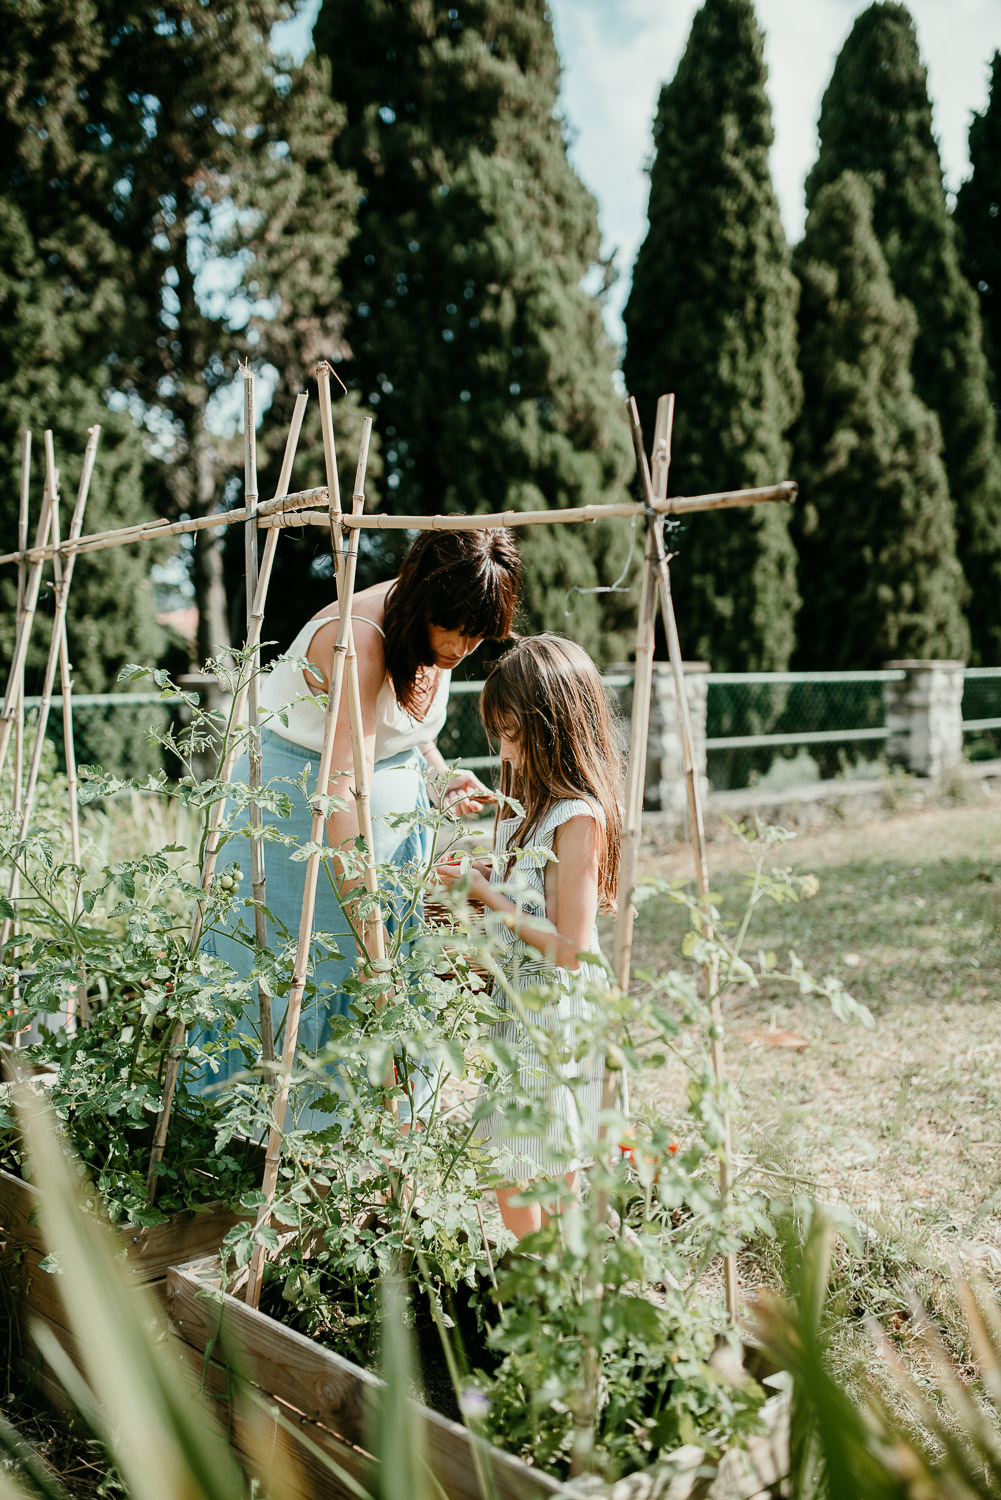 A mother and daughter are in their garden. They are picking cherry tomatoes.